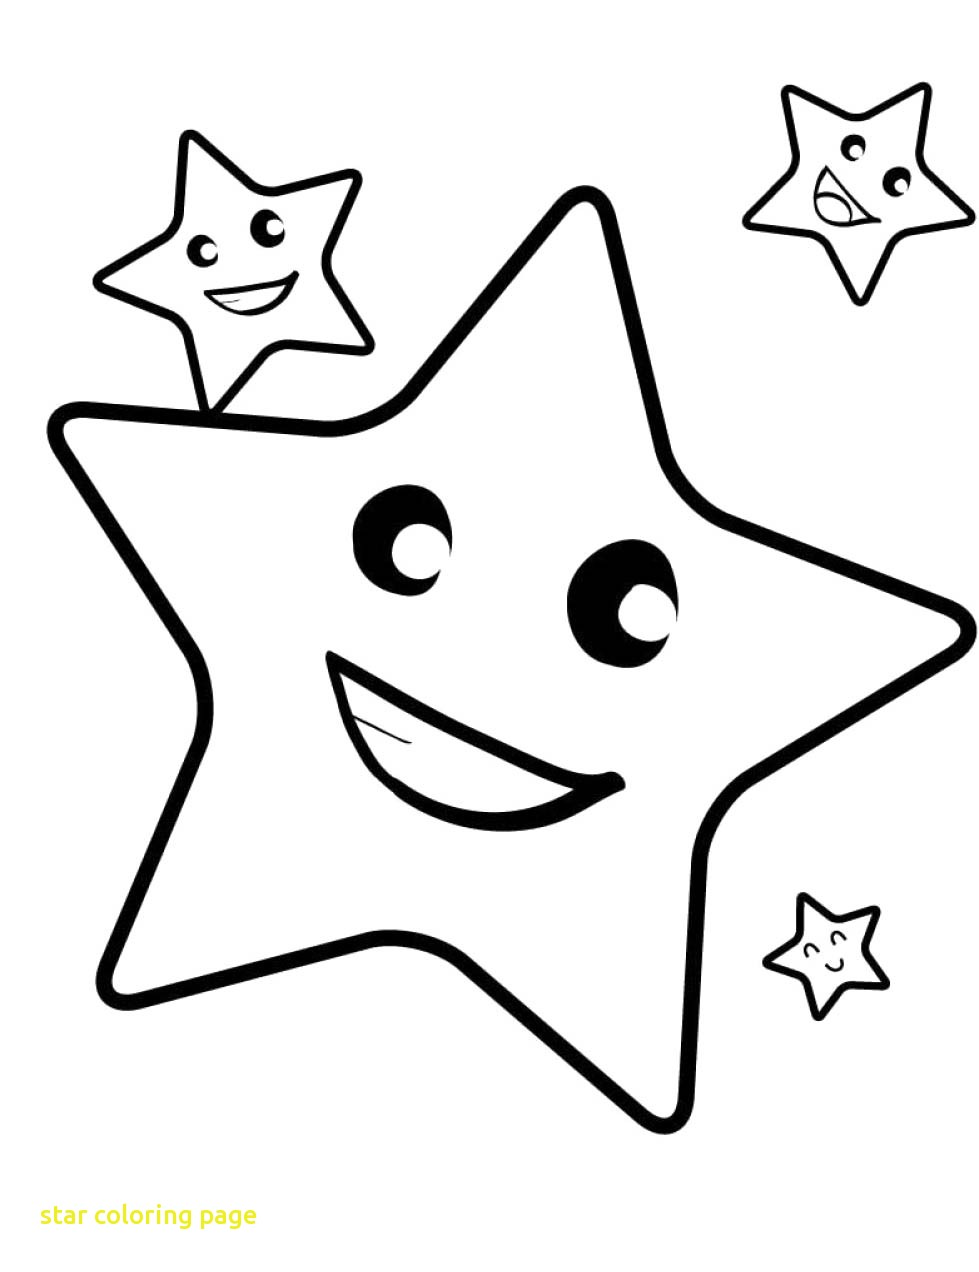 979x1272 Quickly Coloring Pages Of Stars Shape Gallery Patrick Star